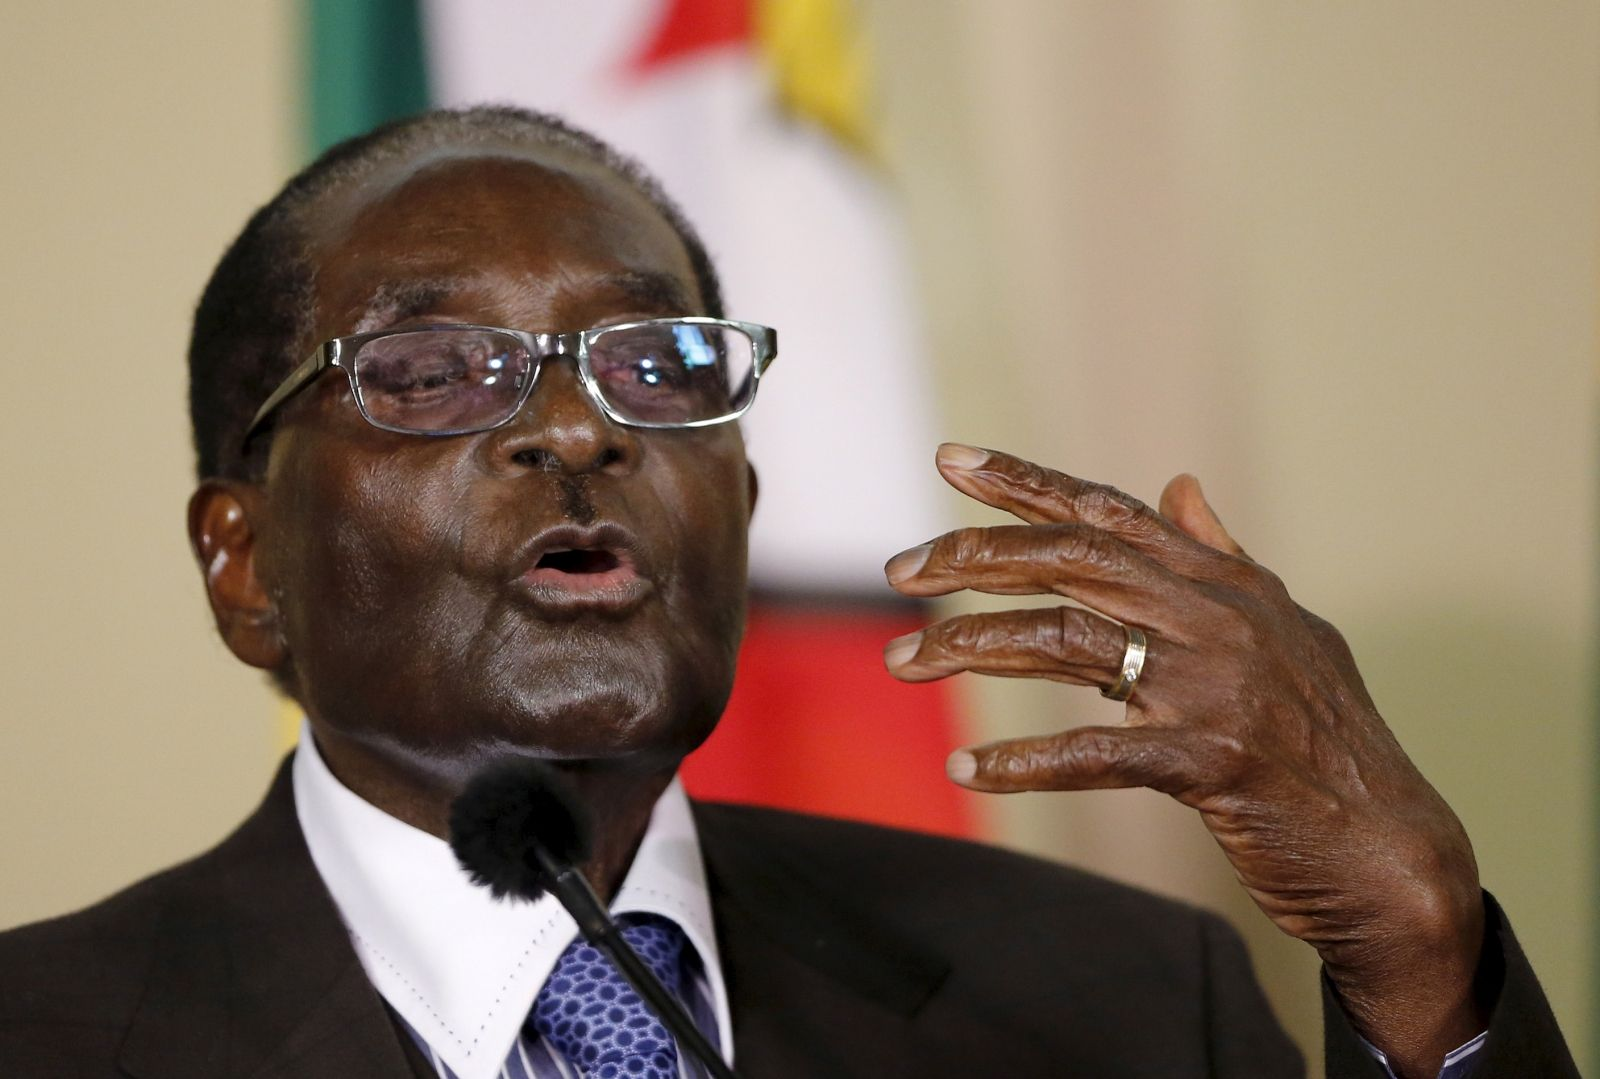 Mugabe Proposes to Barack Obama